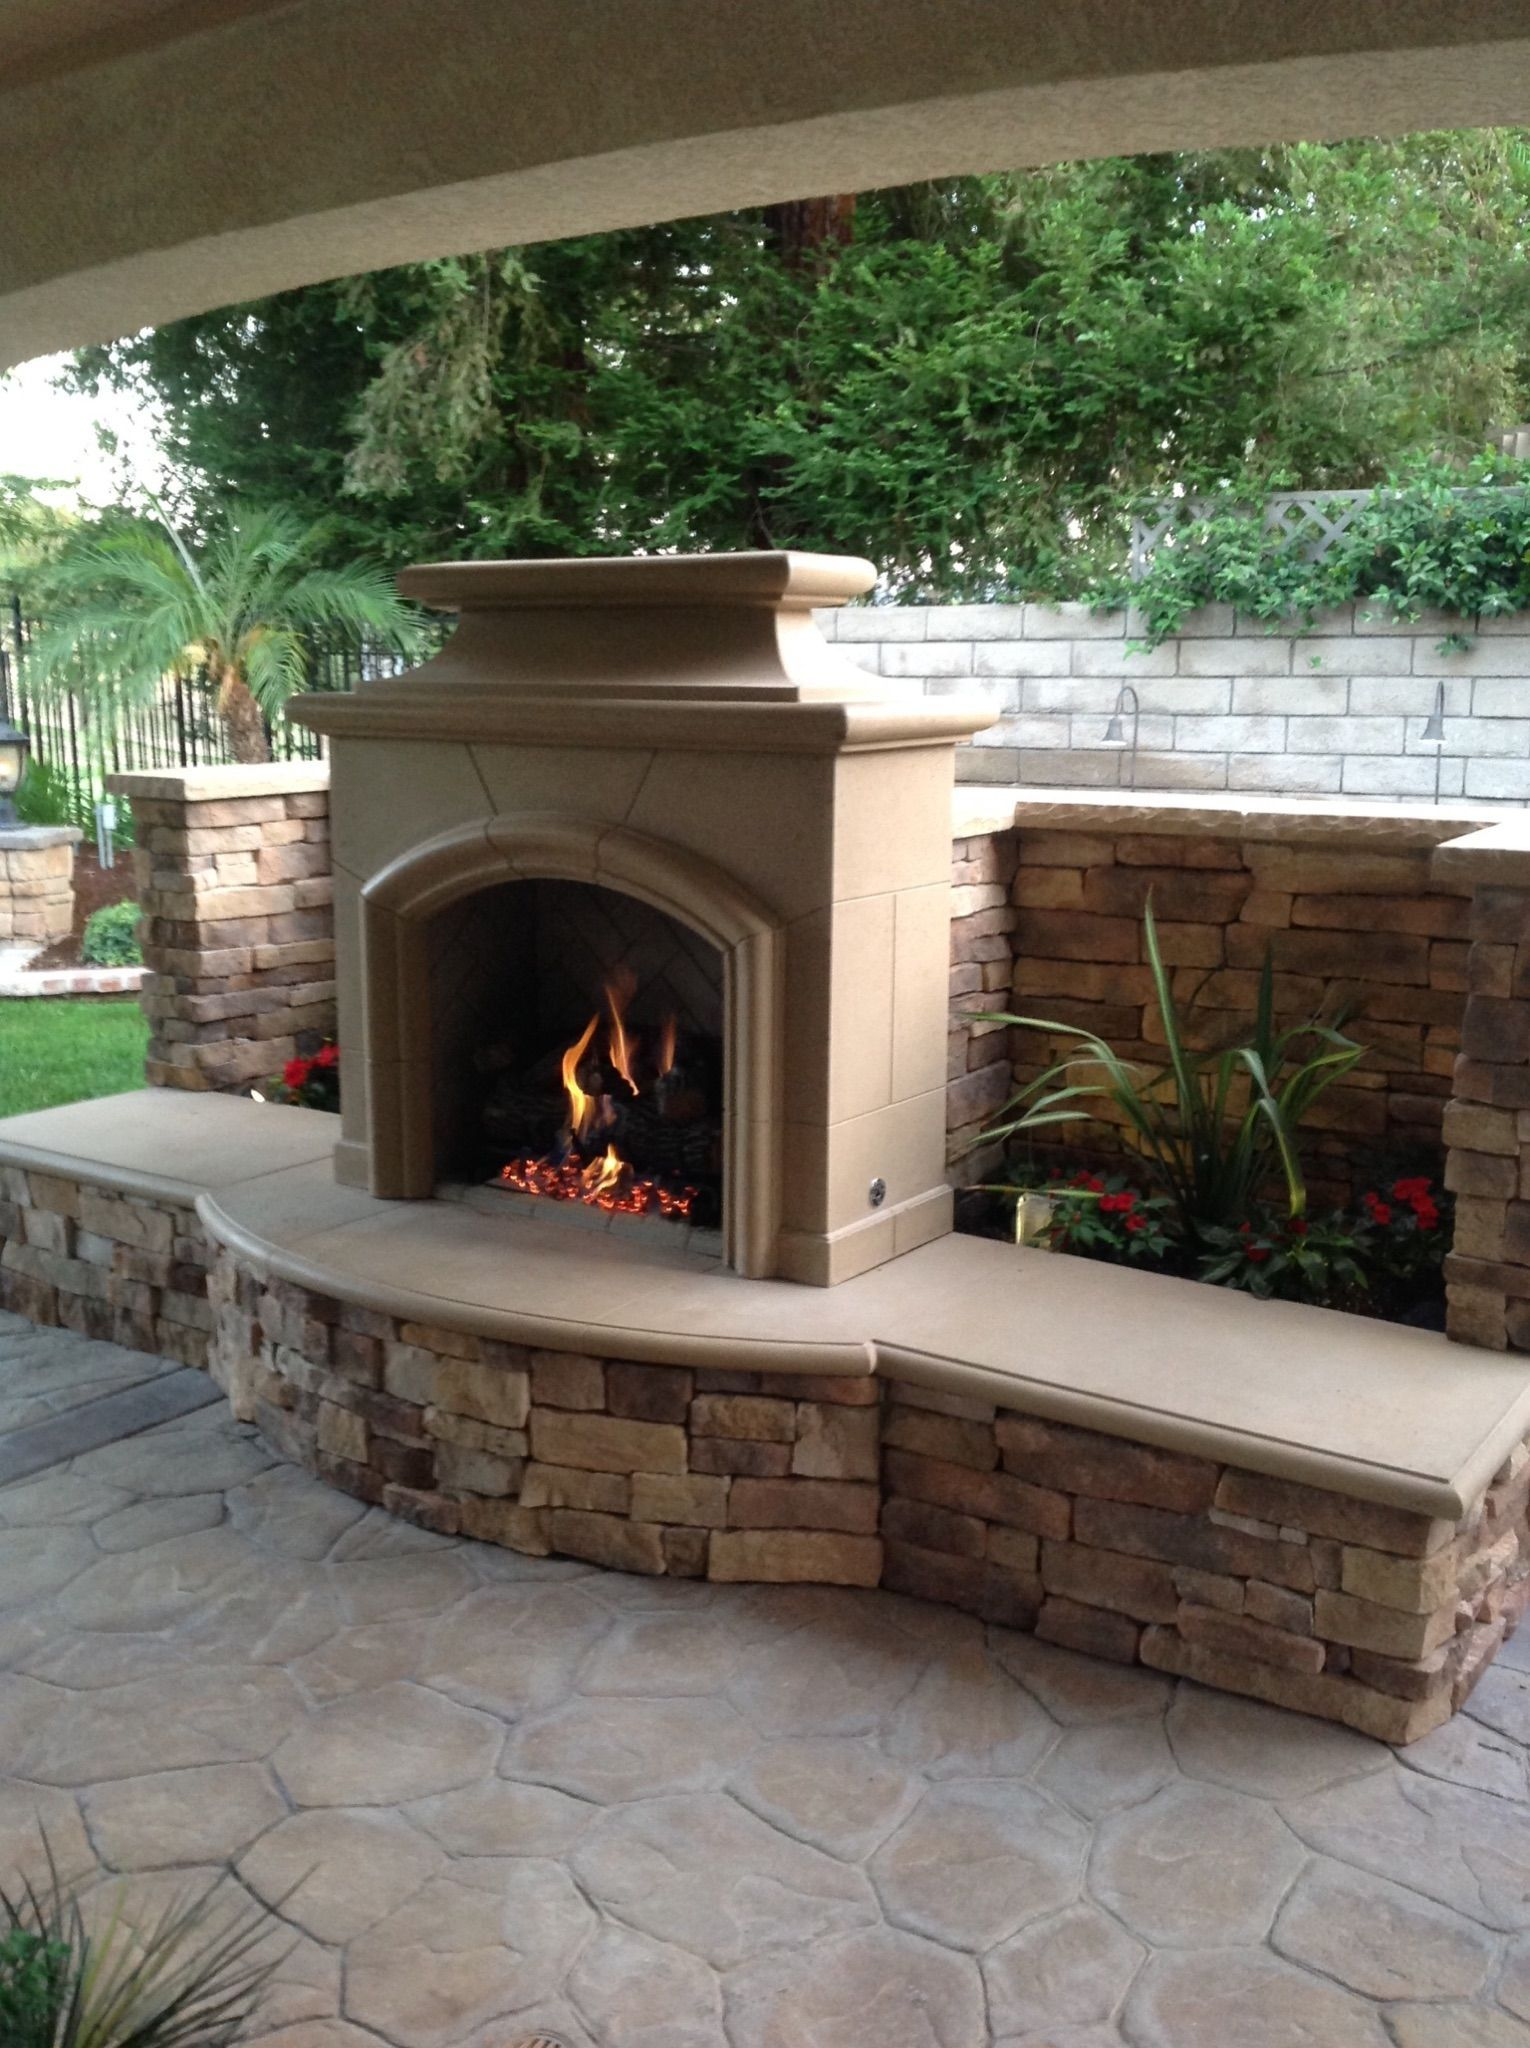 Outdoor Kitchen Ideas on a Budget (Affordable, Small, and ... on Simple Outdoor Fireplace Ideas id=34704